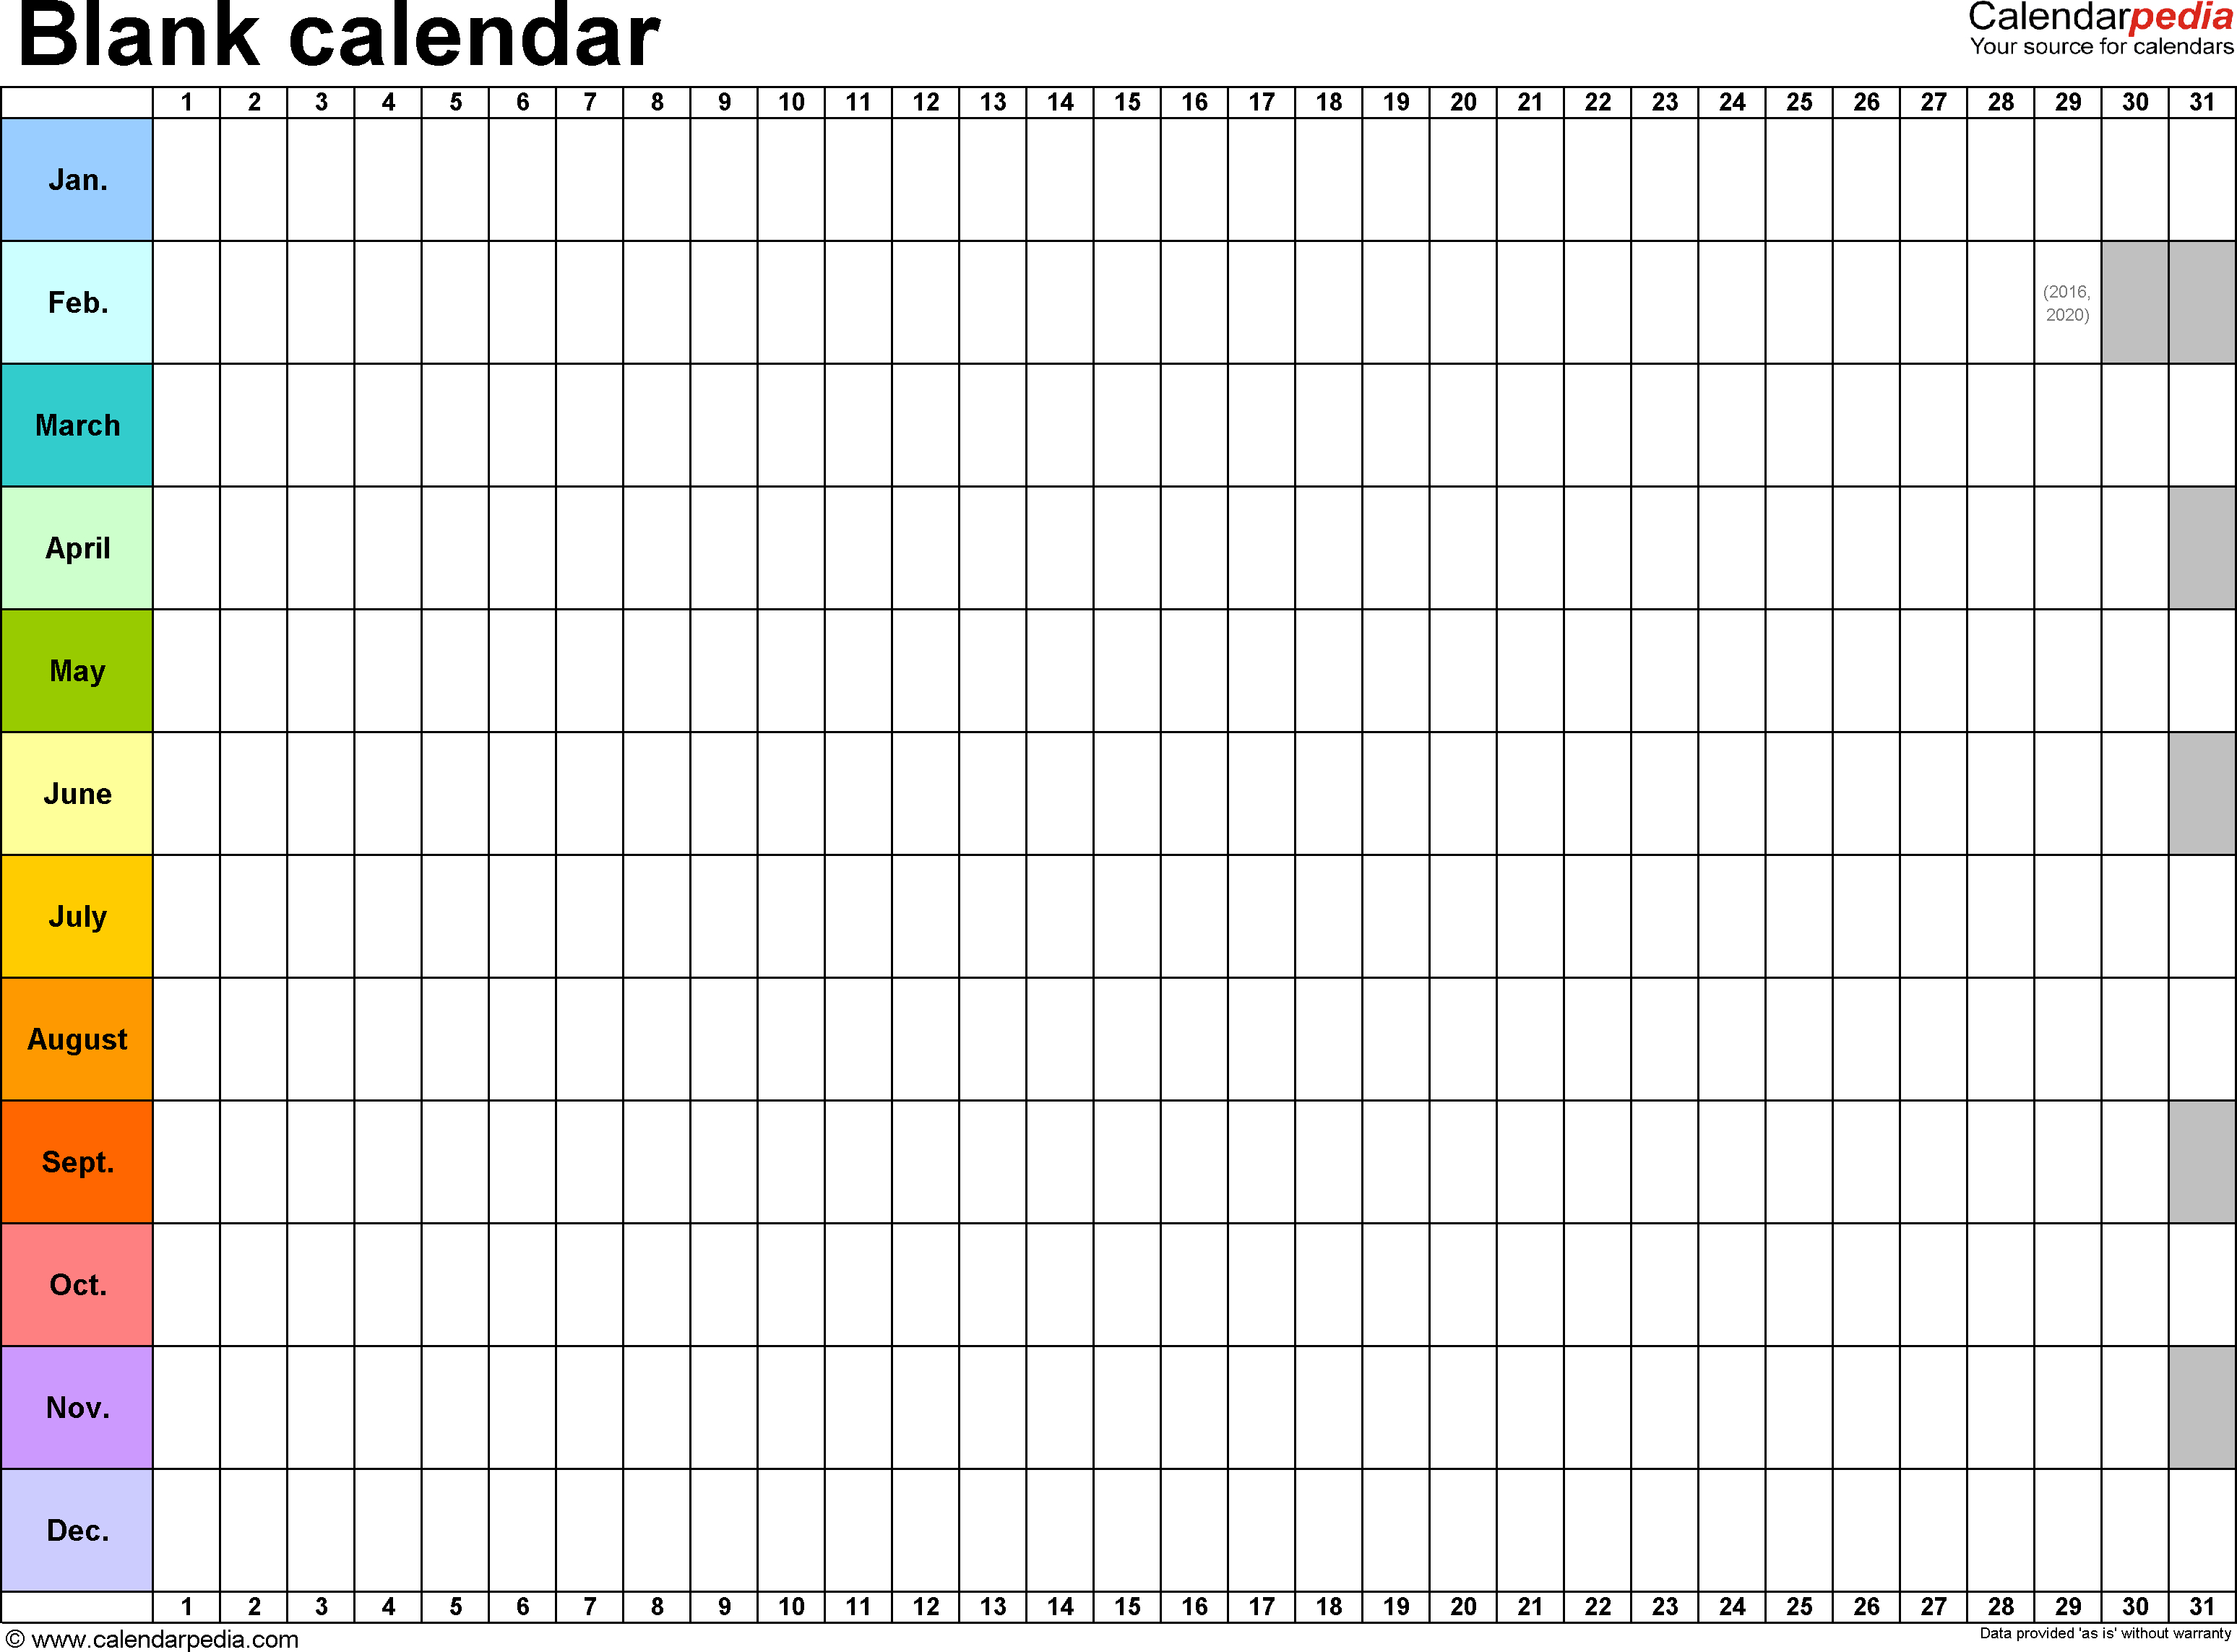 Blank Calendar - 9 Free Printable Microsoft Word Templates throughout 12 Month Blank Calendar